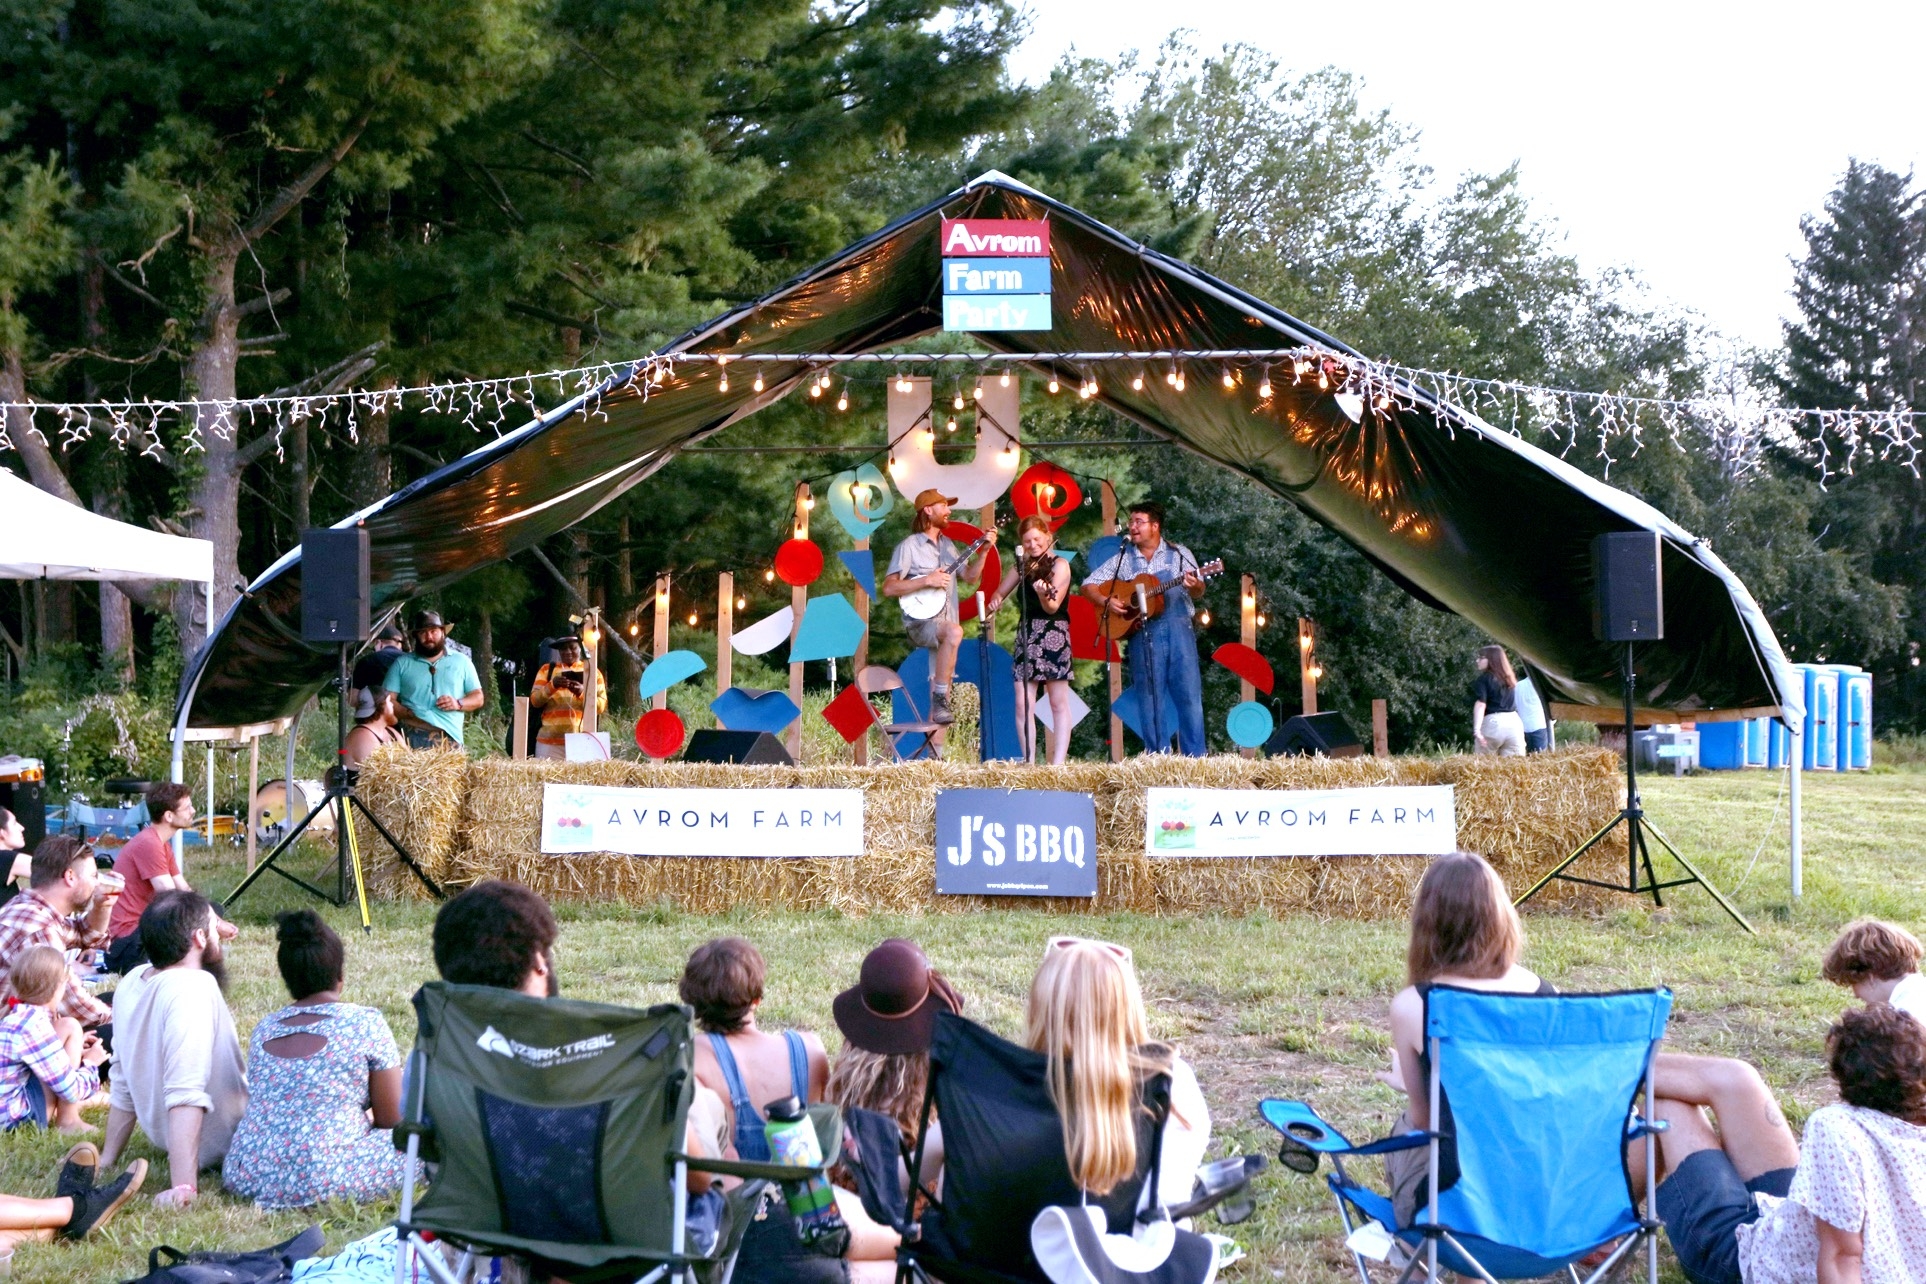 The musical group Jenny and the Hog Drovers on the Avrom Farm Party stage.